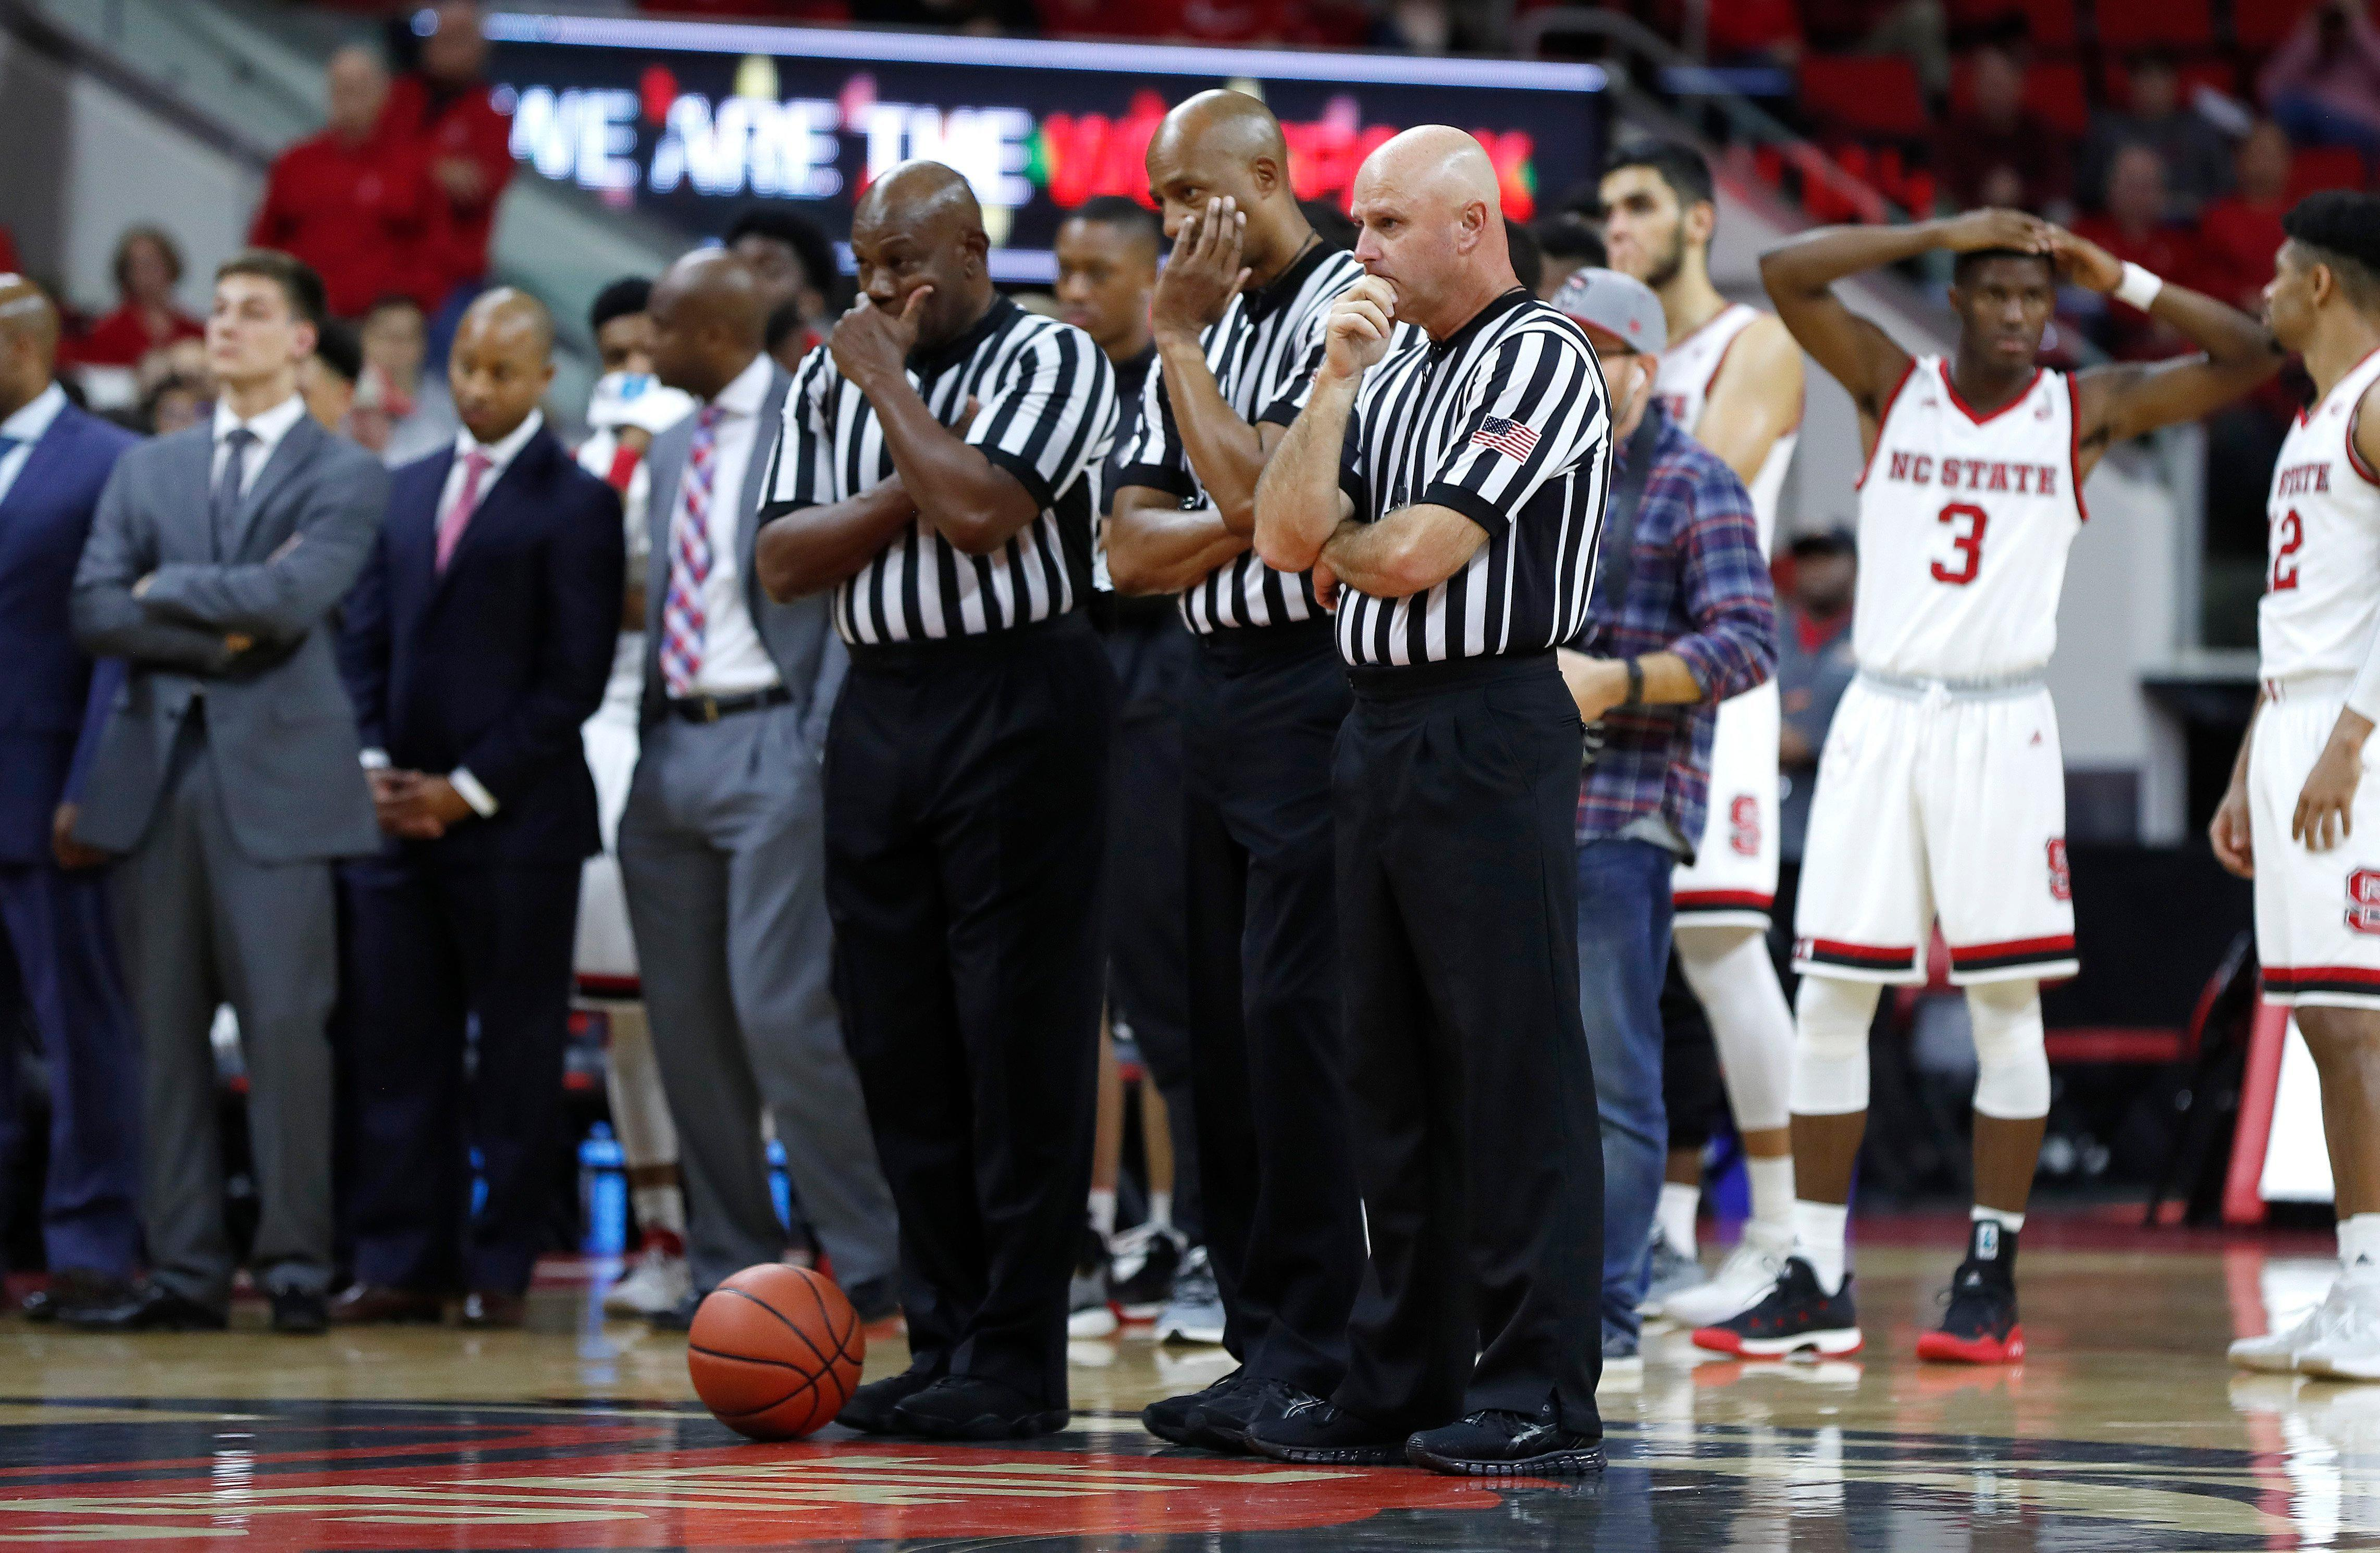 Game 0fficials including from left, Les Jones, Bert Smith and Tim Comer, watch as South Carolina State's Tyvoris Solomon is attended to after he was injured during the first half of an NCAA college basketball game against North Carolina State at PNC Arena in Raleigh, N.C., Saturday, Dec. 2, 2017.  (Ethan Hyman/The News & Observer via AP)